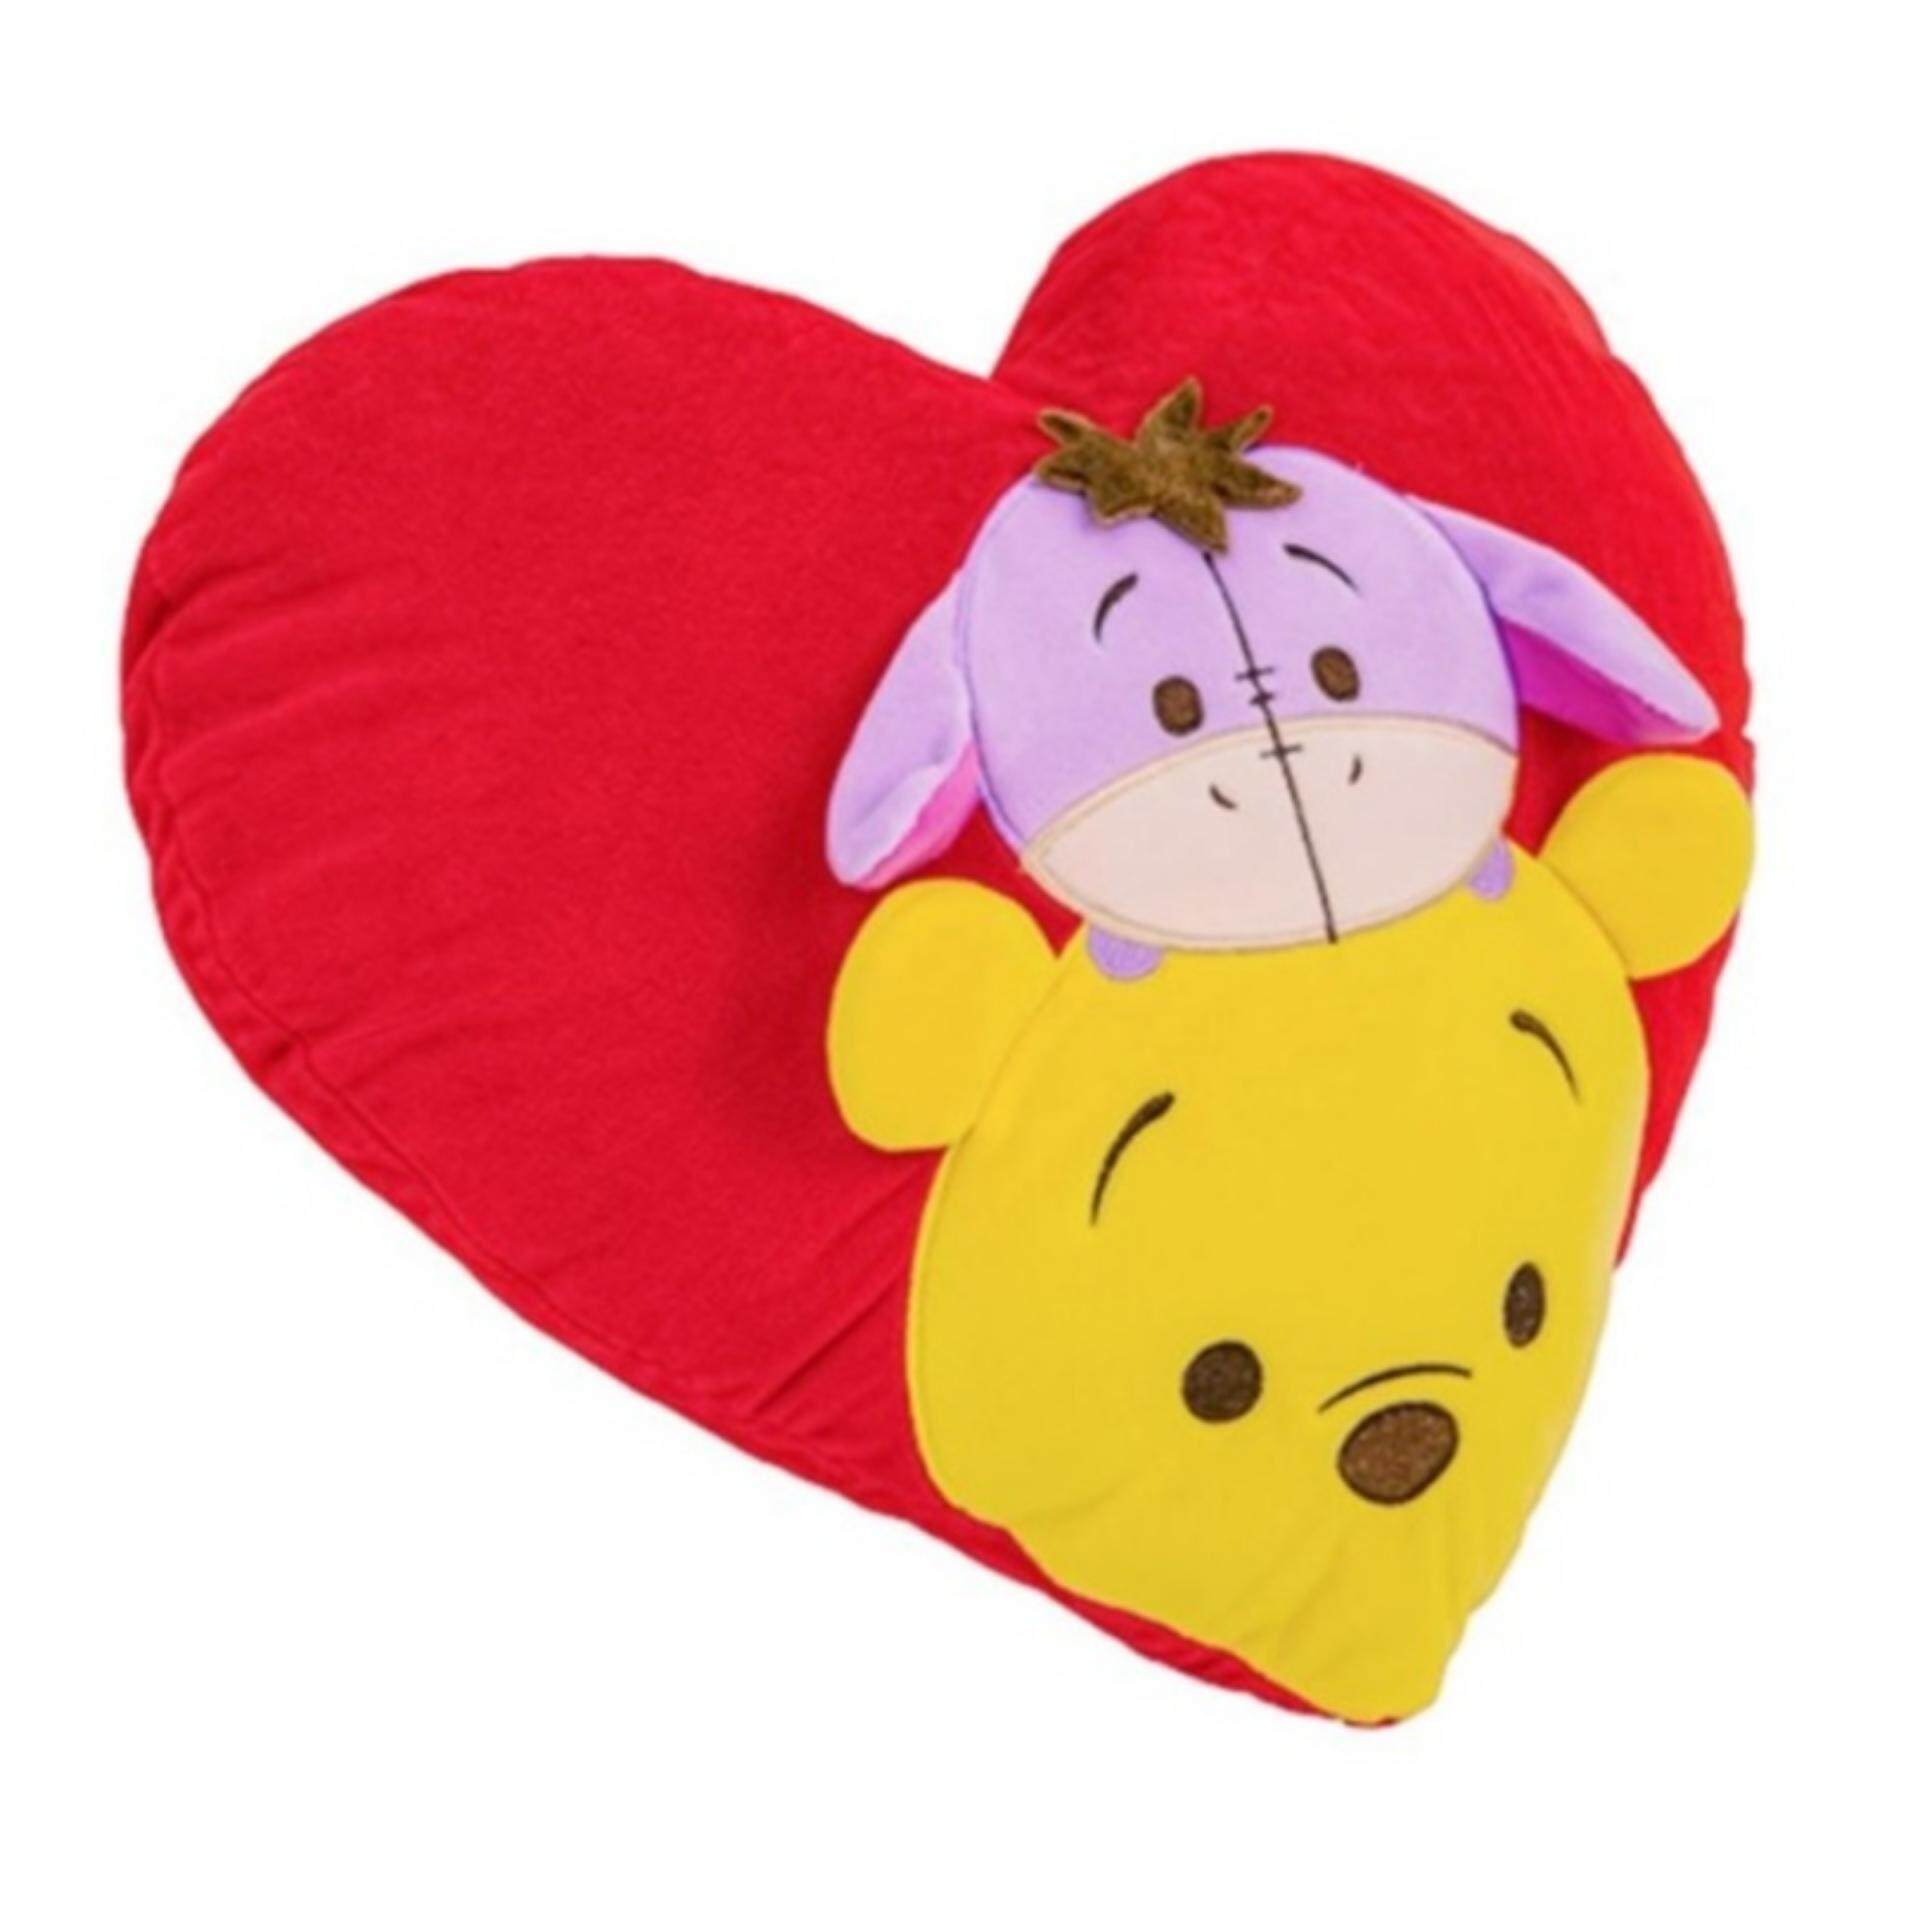 Disney Tsum Tsum Heart Cushion - Pooh & Eeyore